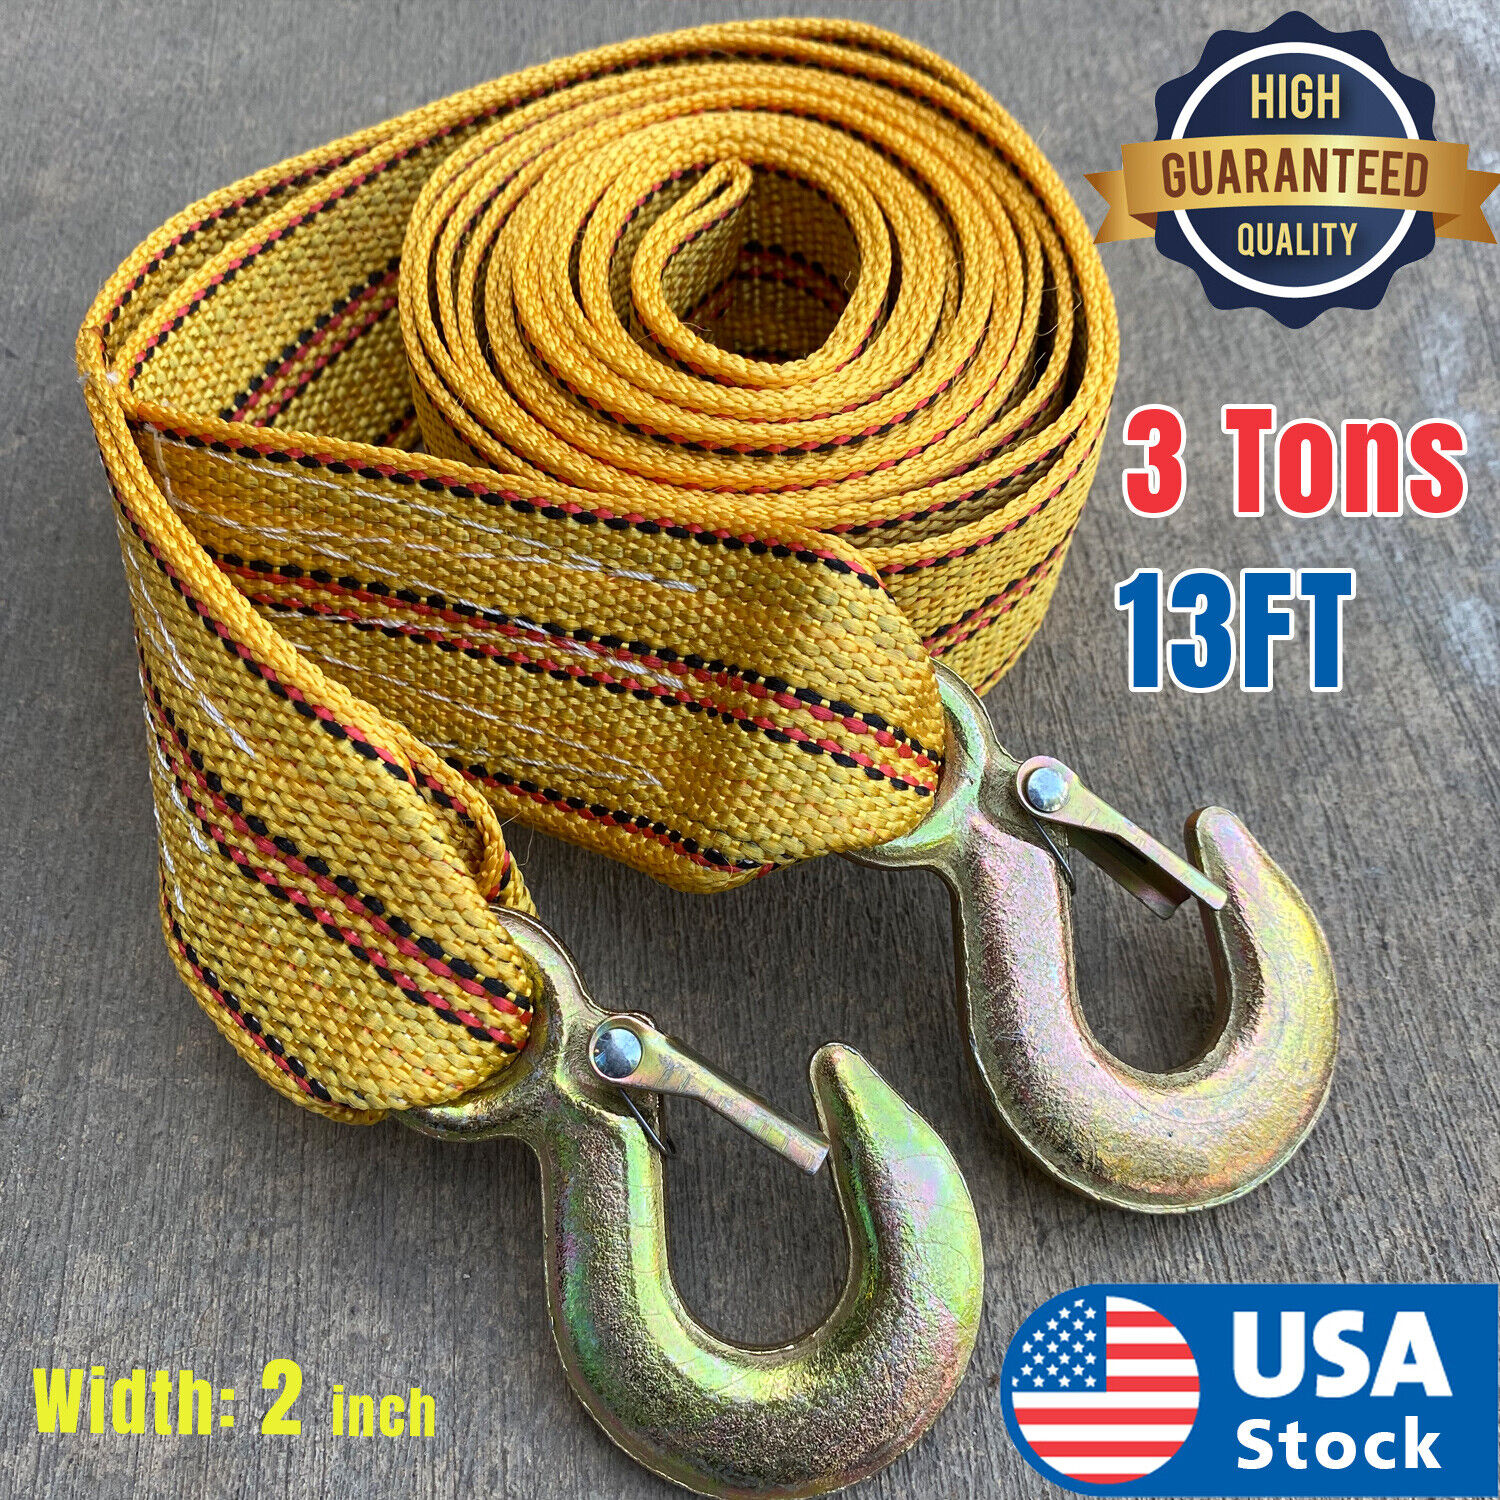 USA 3Tons Car Tow Cable Towing Strap Rope with Hooks Emergency Heavy Duty 13 FT Car & Truck Parts